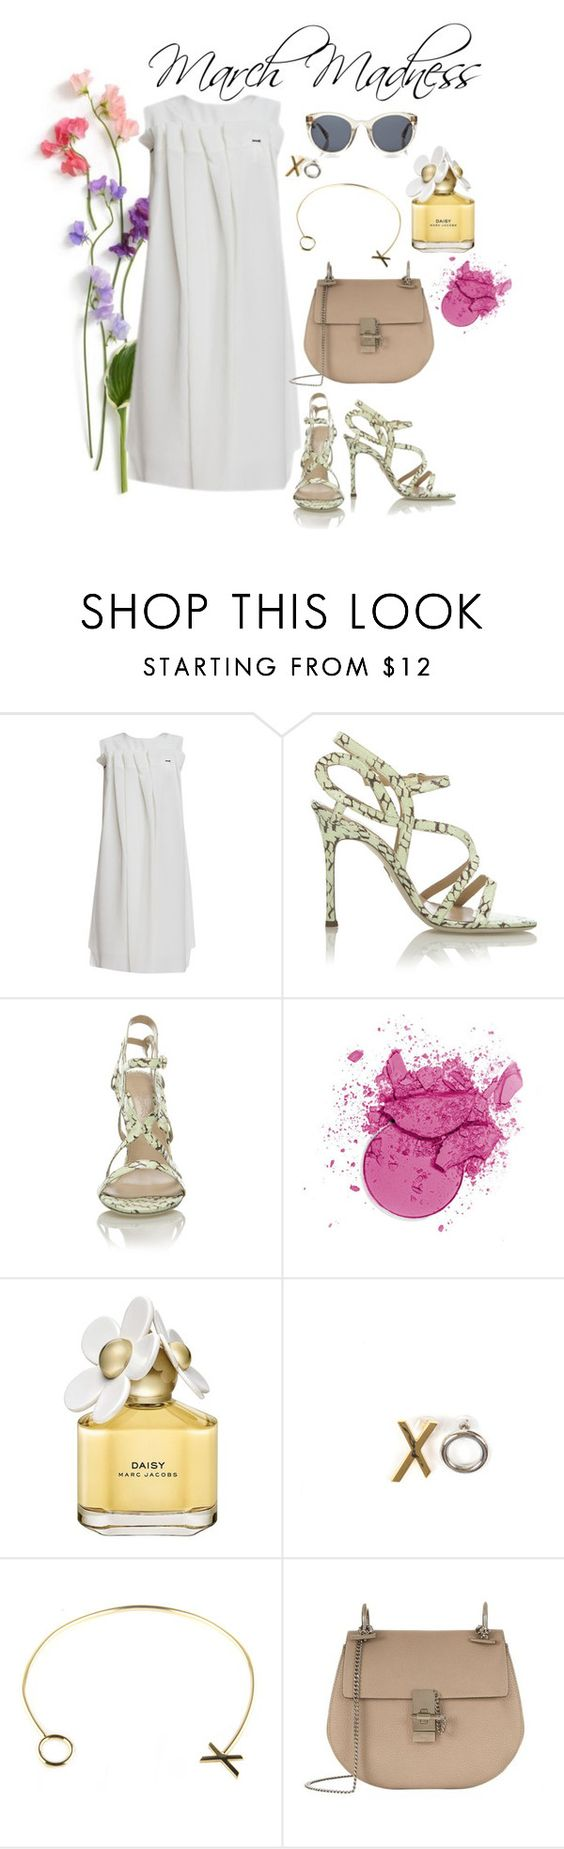 """""""March Madness"""" by wdrobe-apparel on Polyvore featuring J. JS Lee, Marc Jacobs, Finlay & Co. and Chloé"""